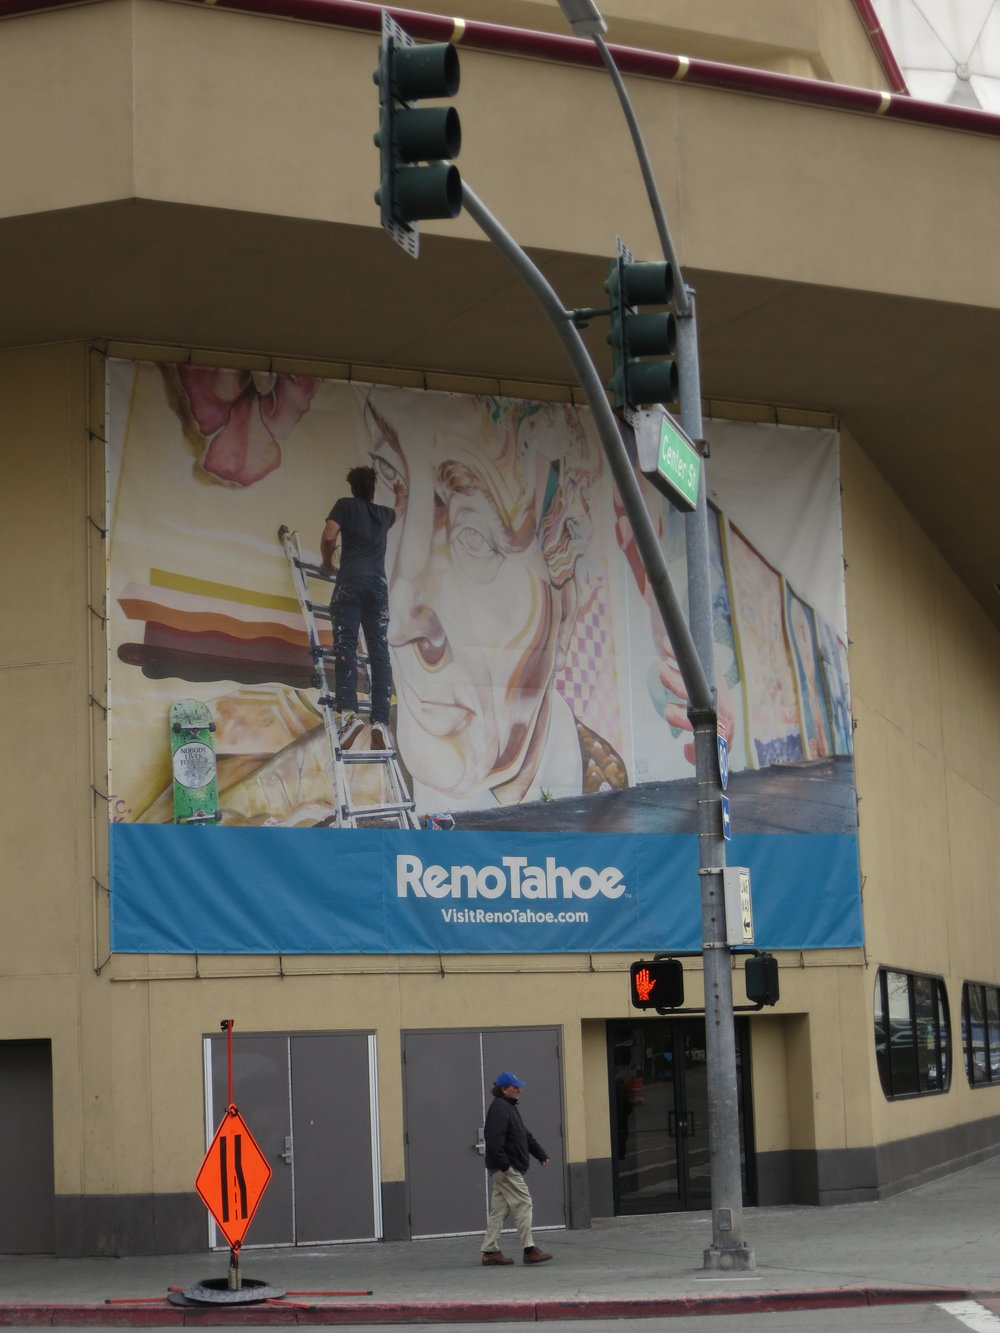 Public art is increasingly becoming a selling point for tourism to Reno.